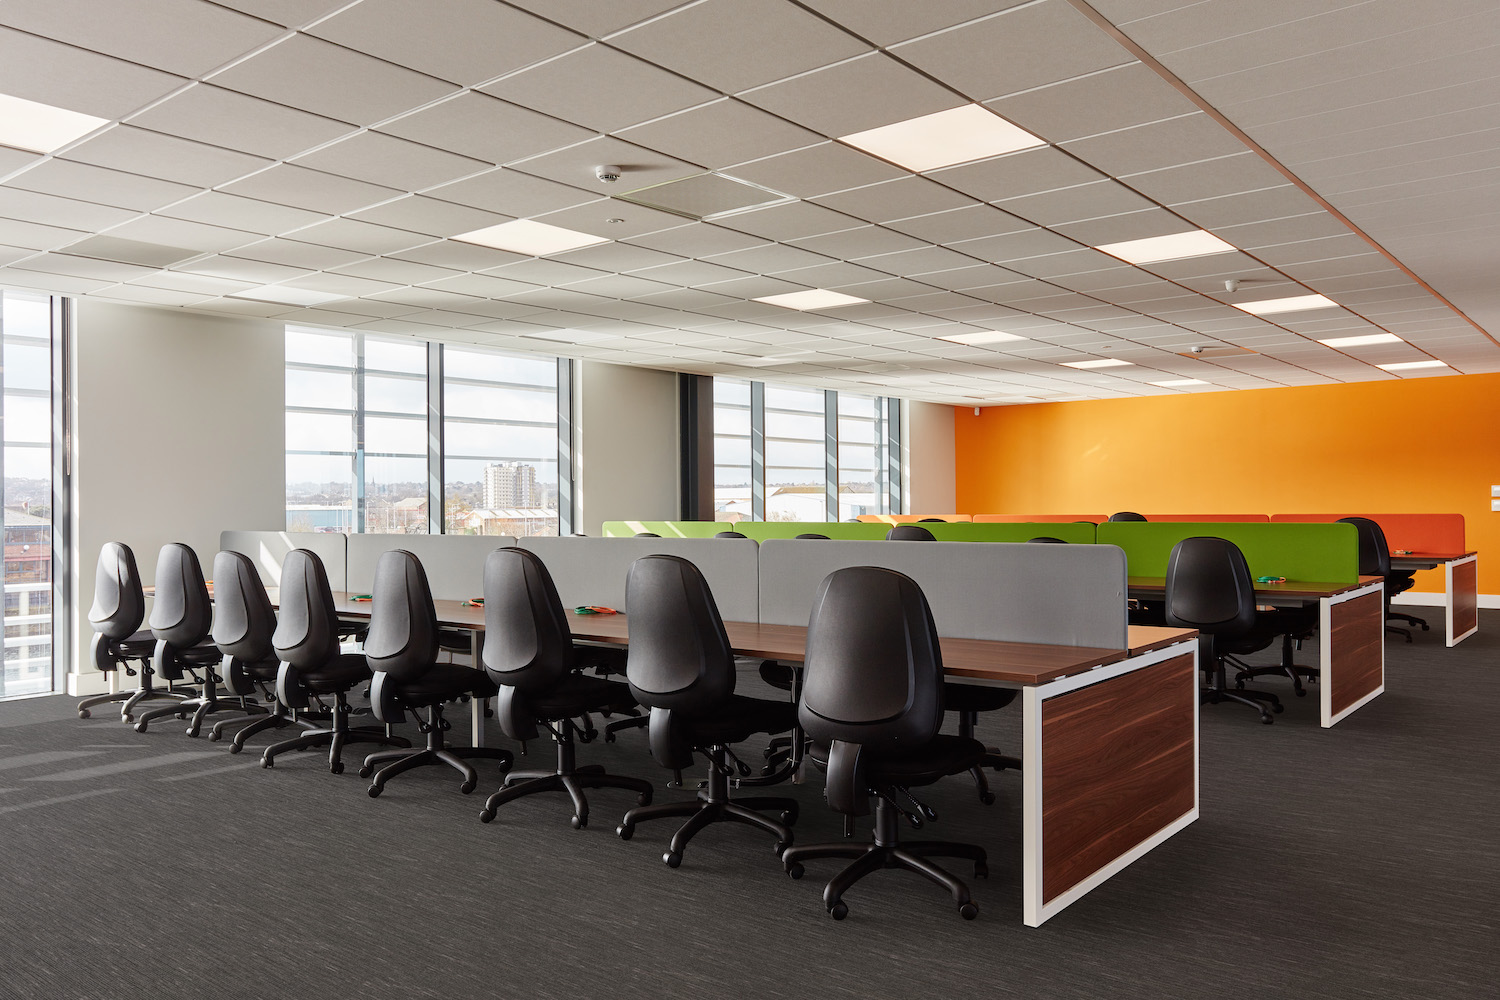 Workspace Linear | Design Loop Carpet Tiles | Paragon Carpet Tiles | Commercial Carpet Tiles